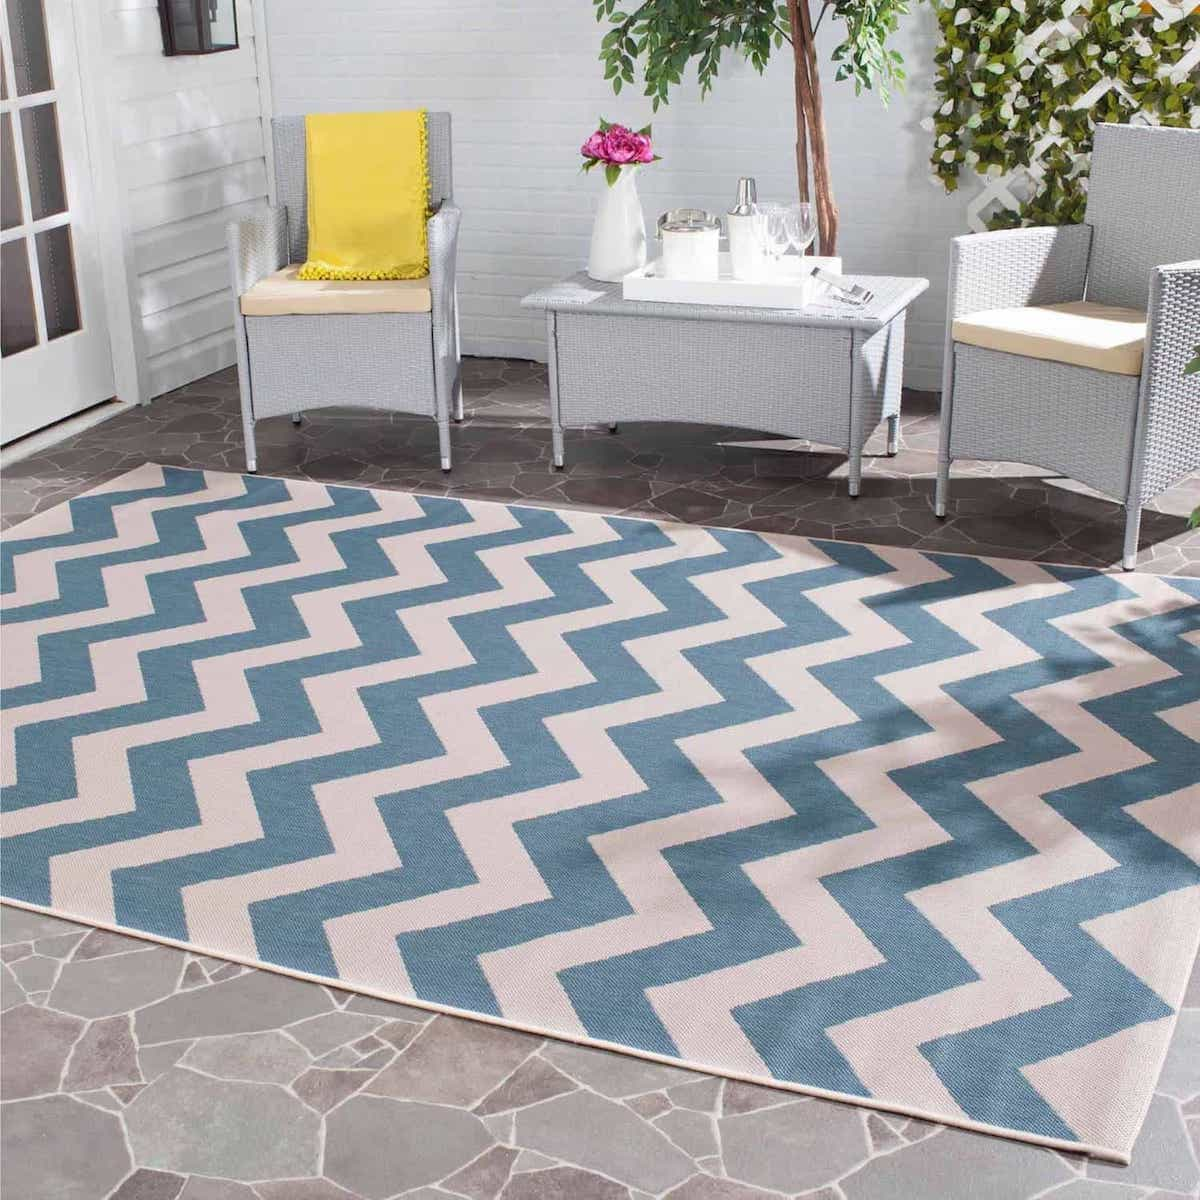 Extravagant Lowes Indoor Outdoor Rugs For Patios Lowes Style In Blue Turquoise Color In Geometric Pattern (Image 9 of 15)